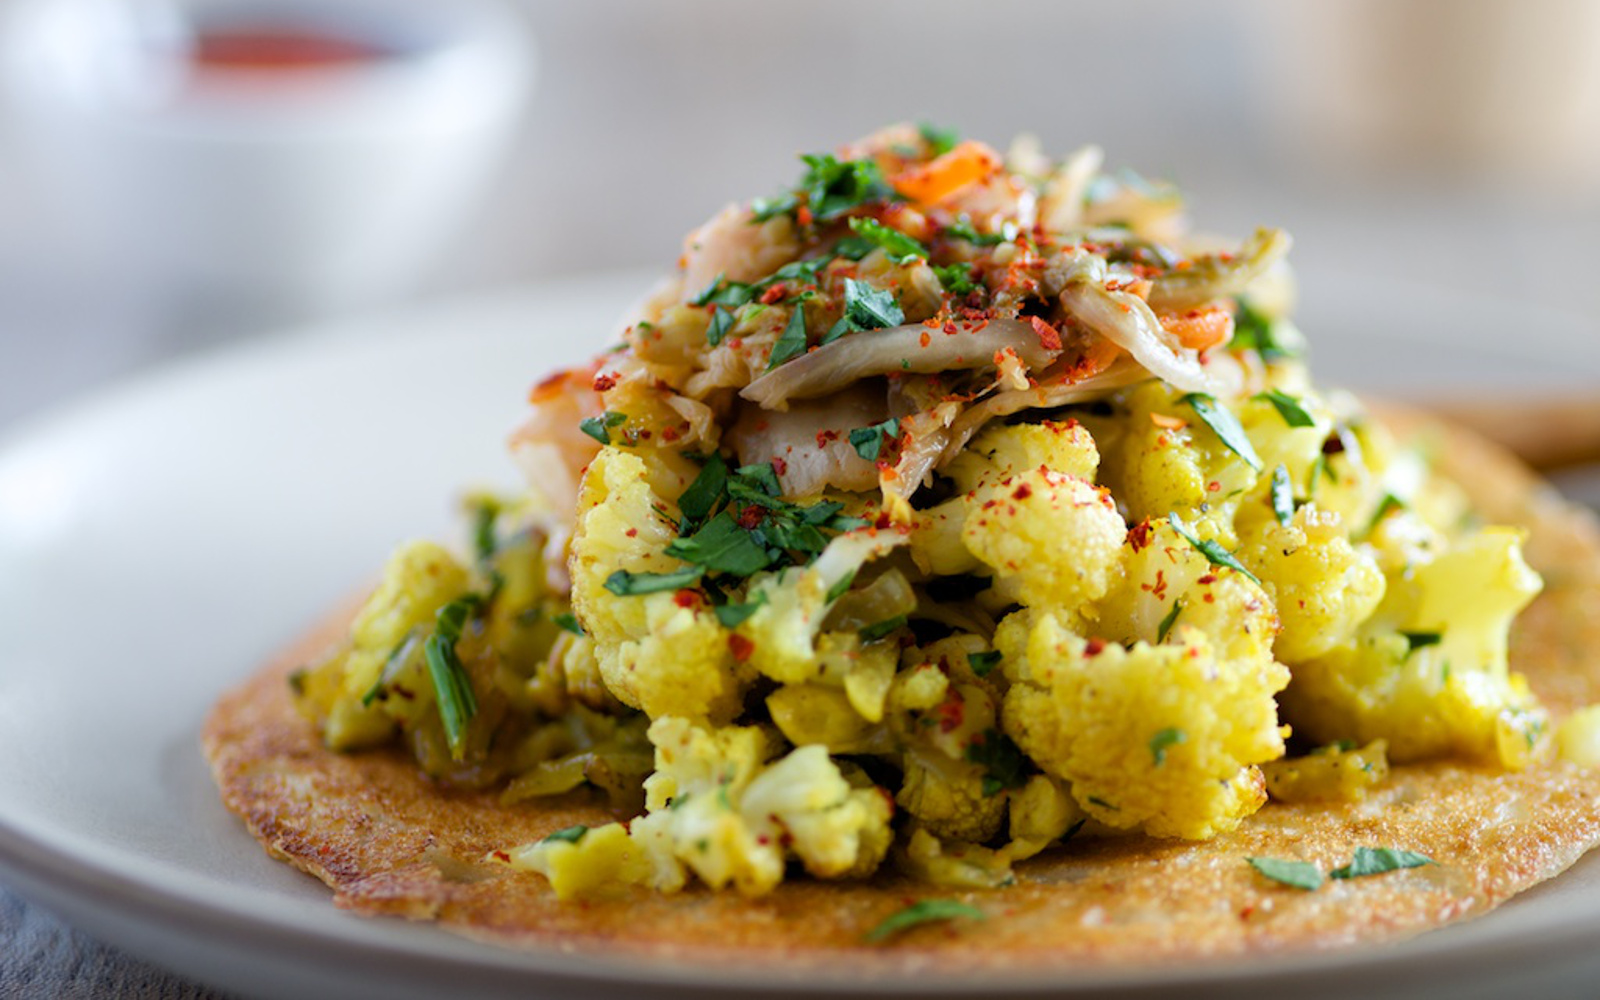 Dosa Cakes With Curried Cauliflower and Kimchi